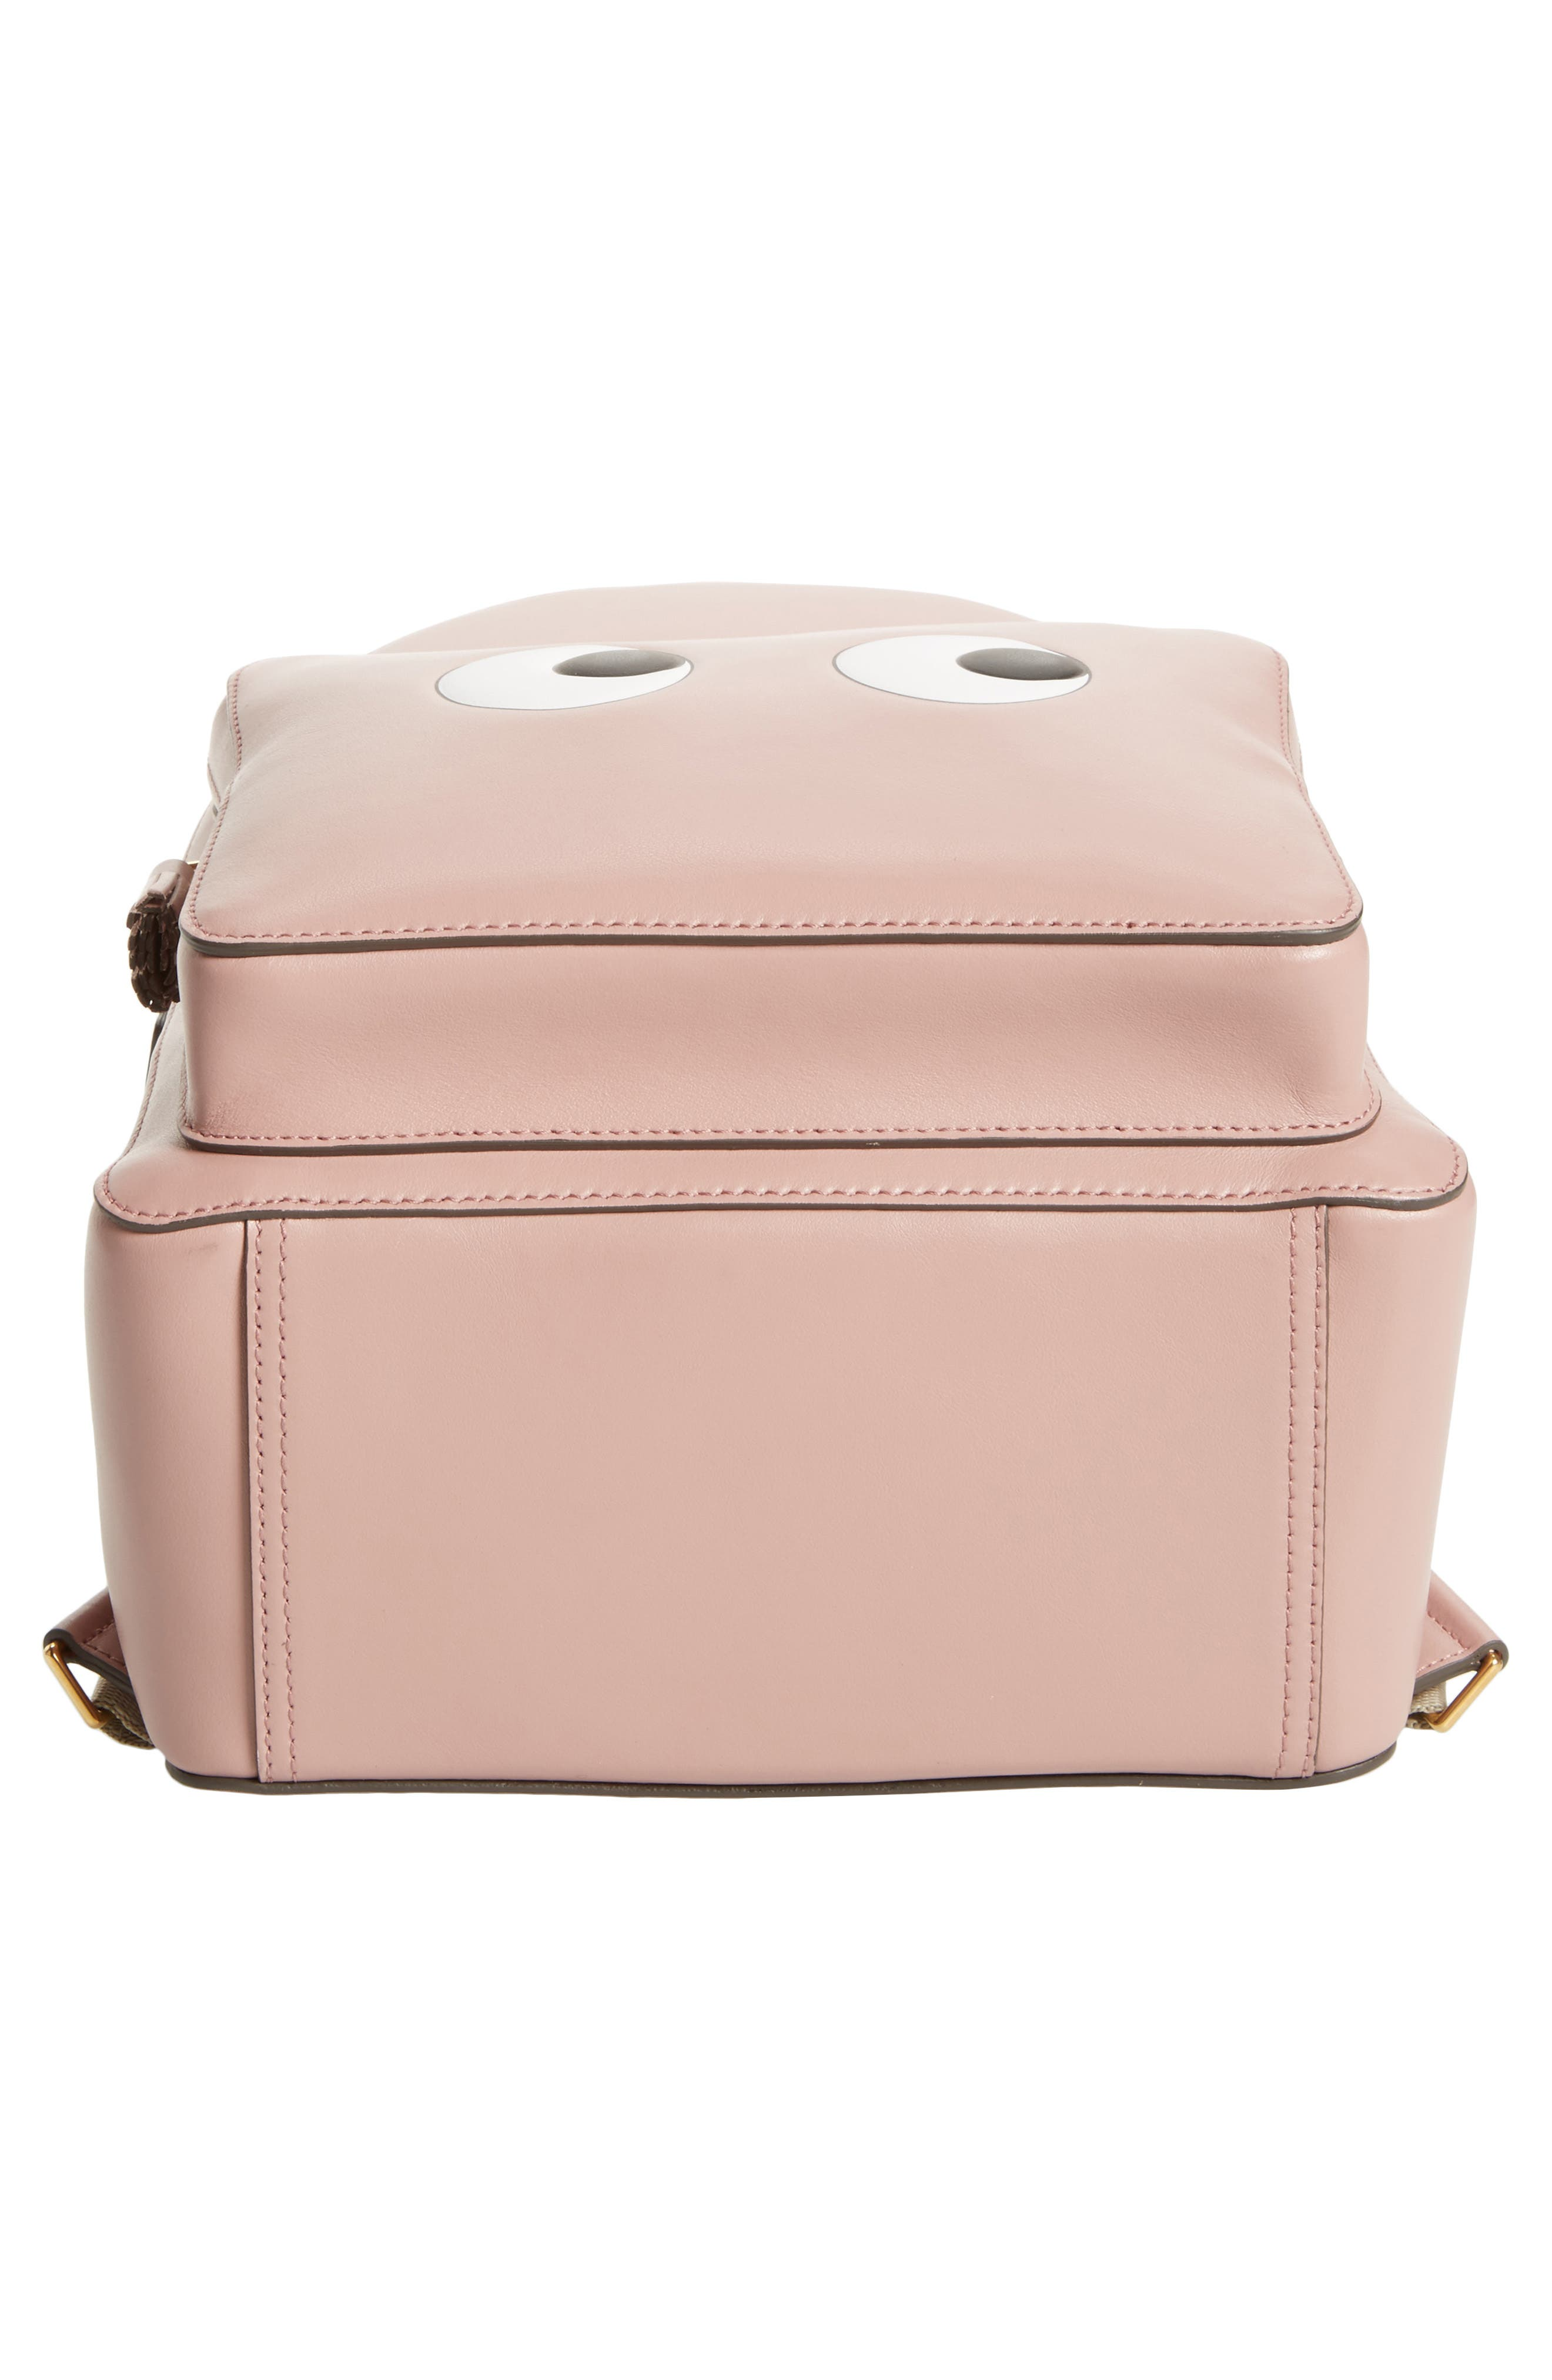 ANYA HINDMARCH,                             Eyes Mini Leather Backpack,                             Alternate thumbnail 6, color,                             650